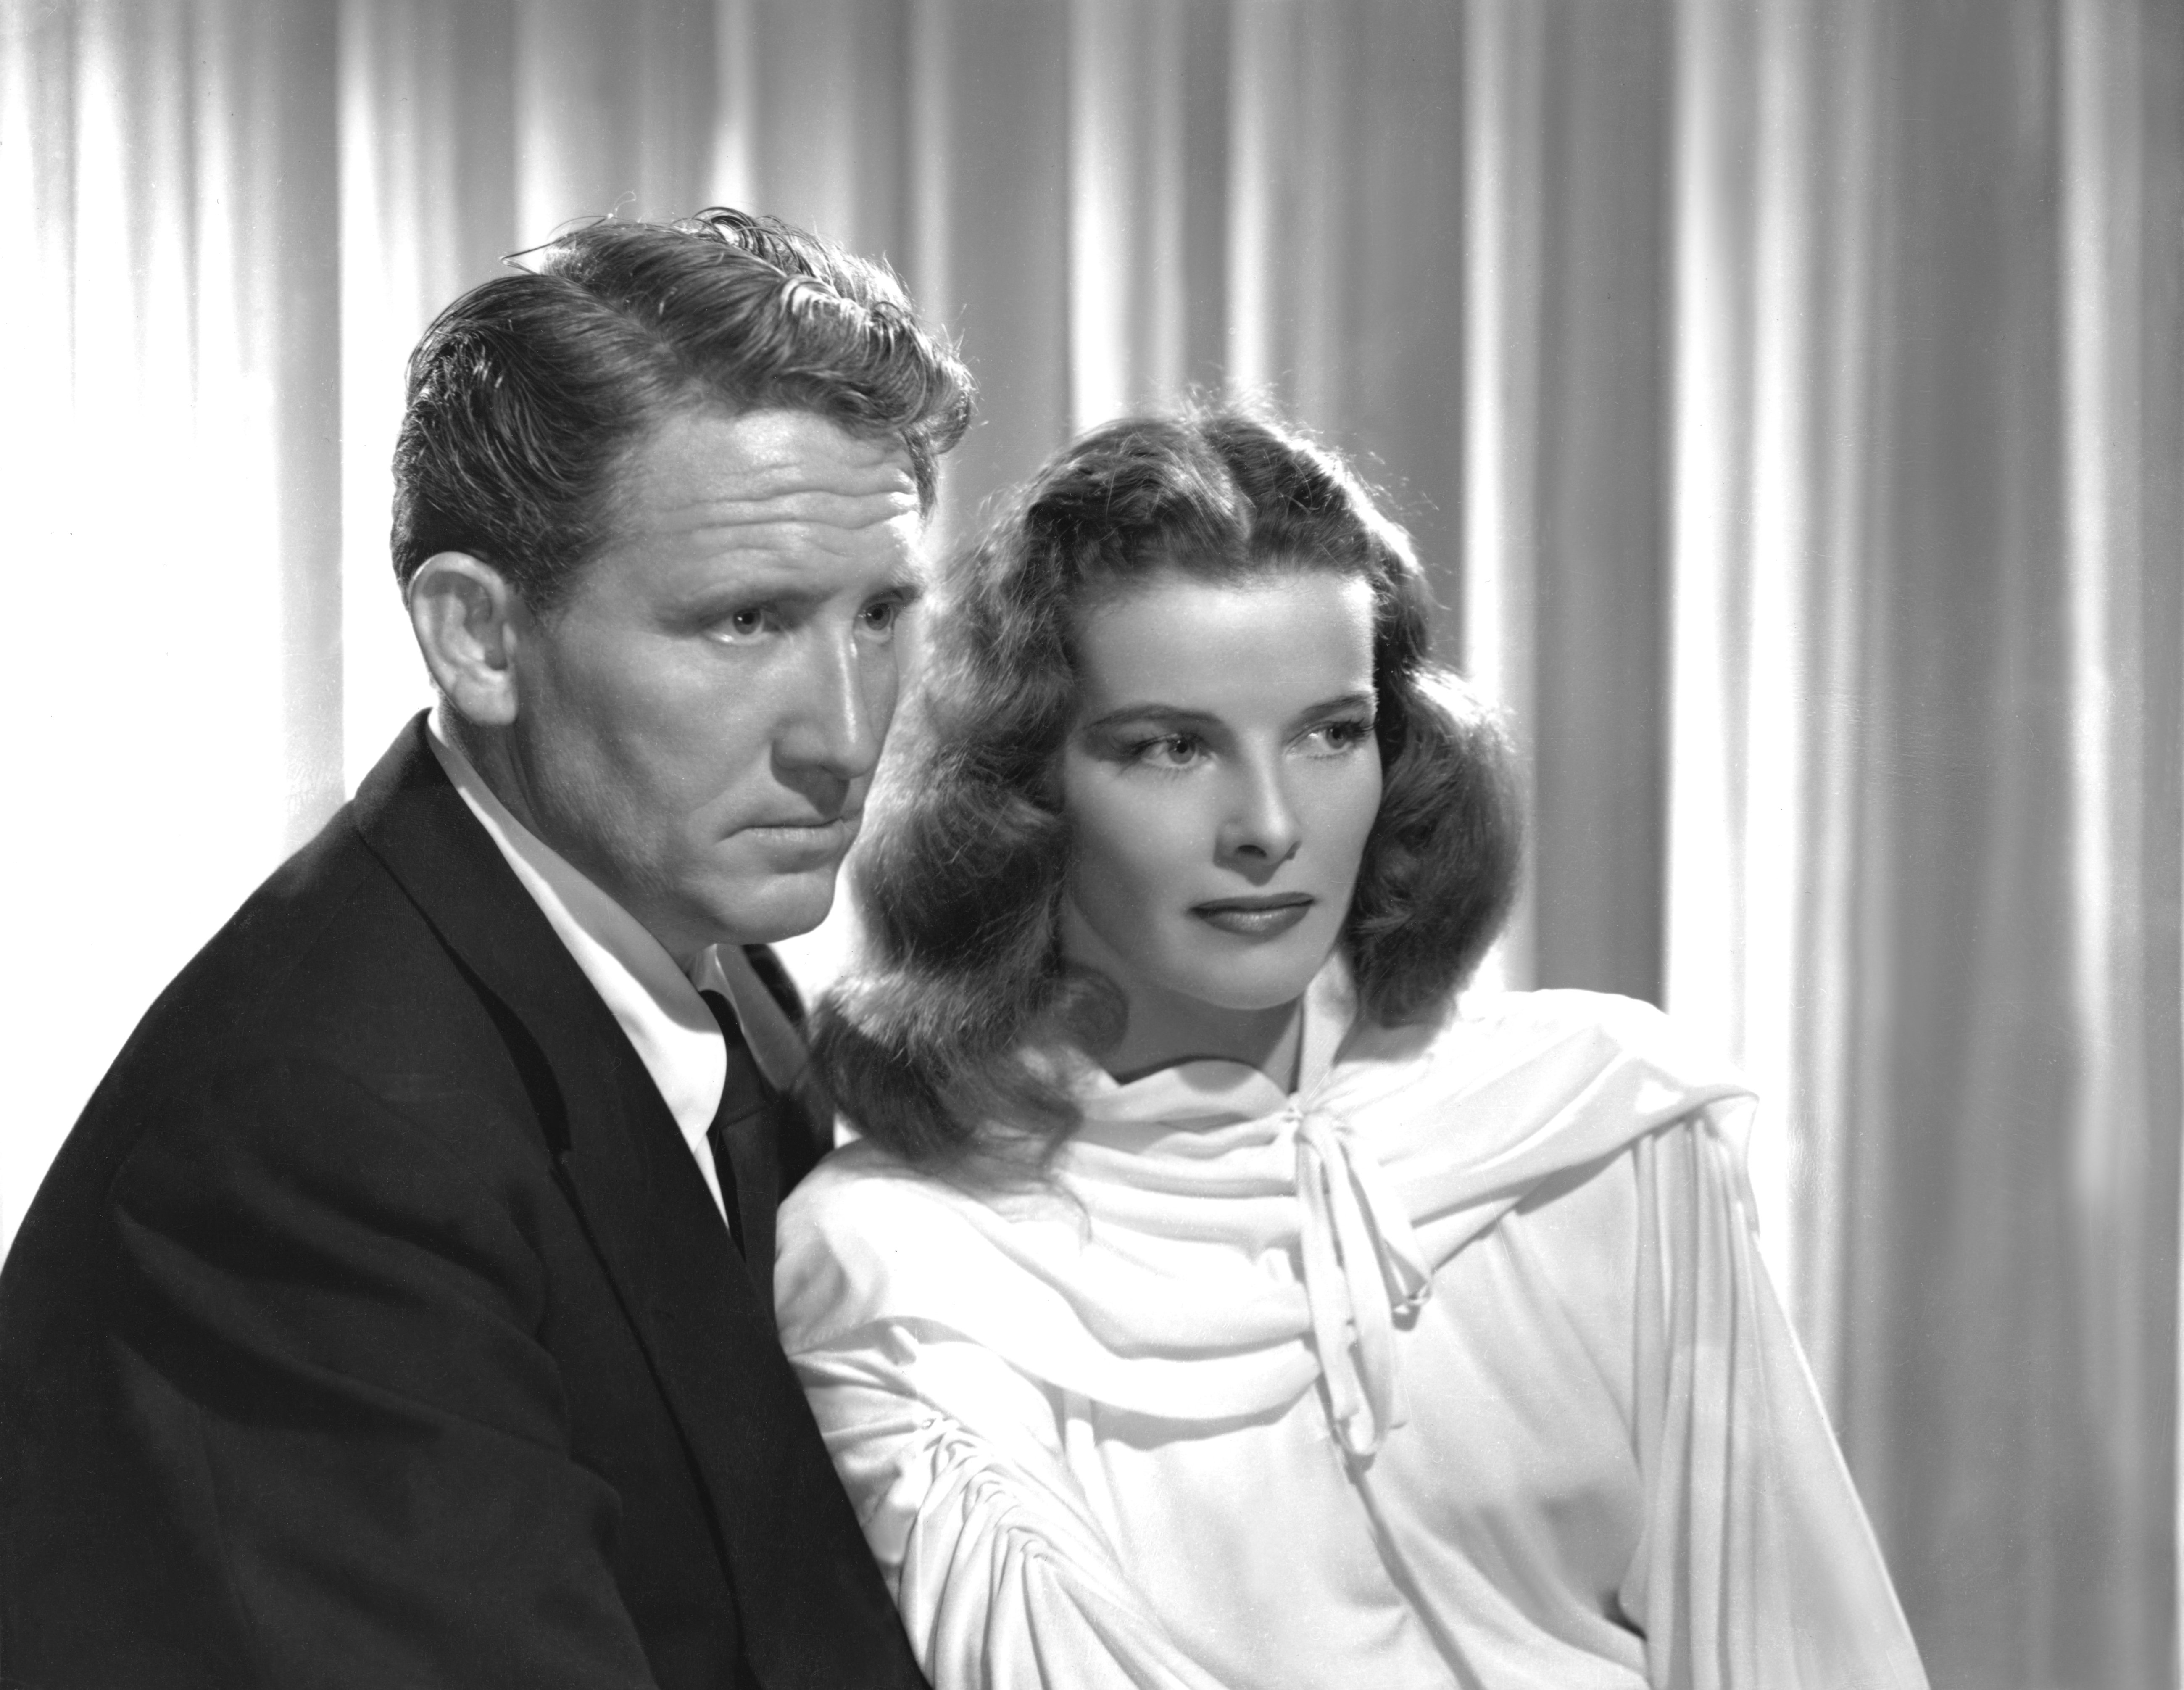 Katharine Hepburn & Spencer Tracy 'Keeper of the Flame' 1942 directed by George Cukor.   Source: Getty Images